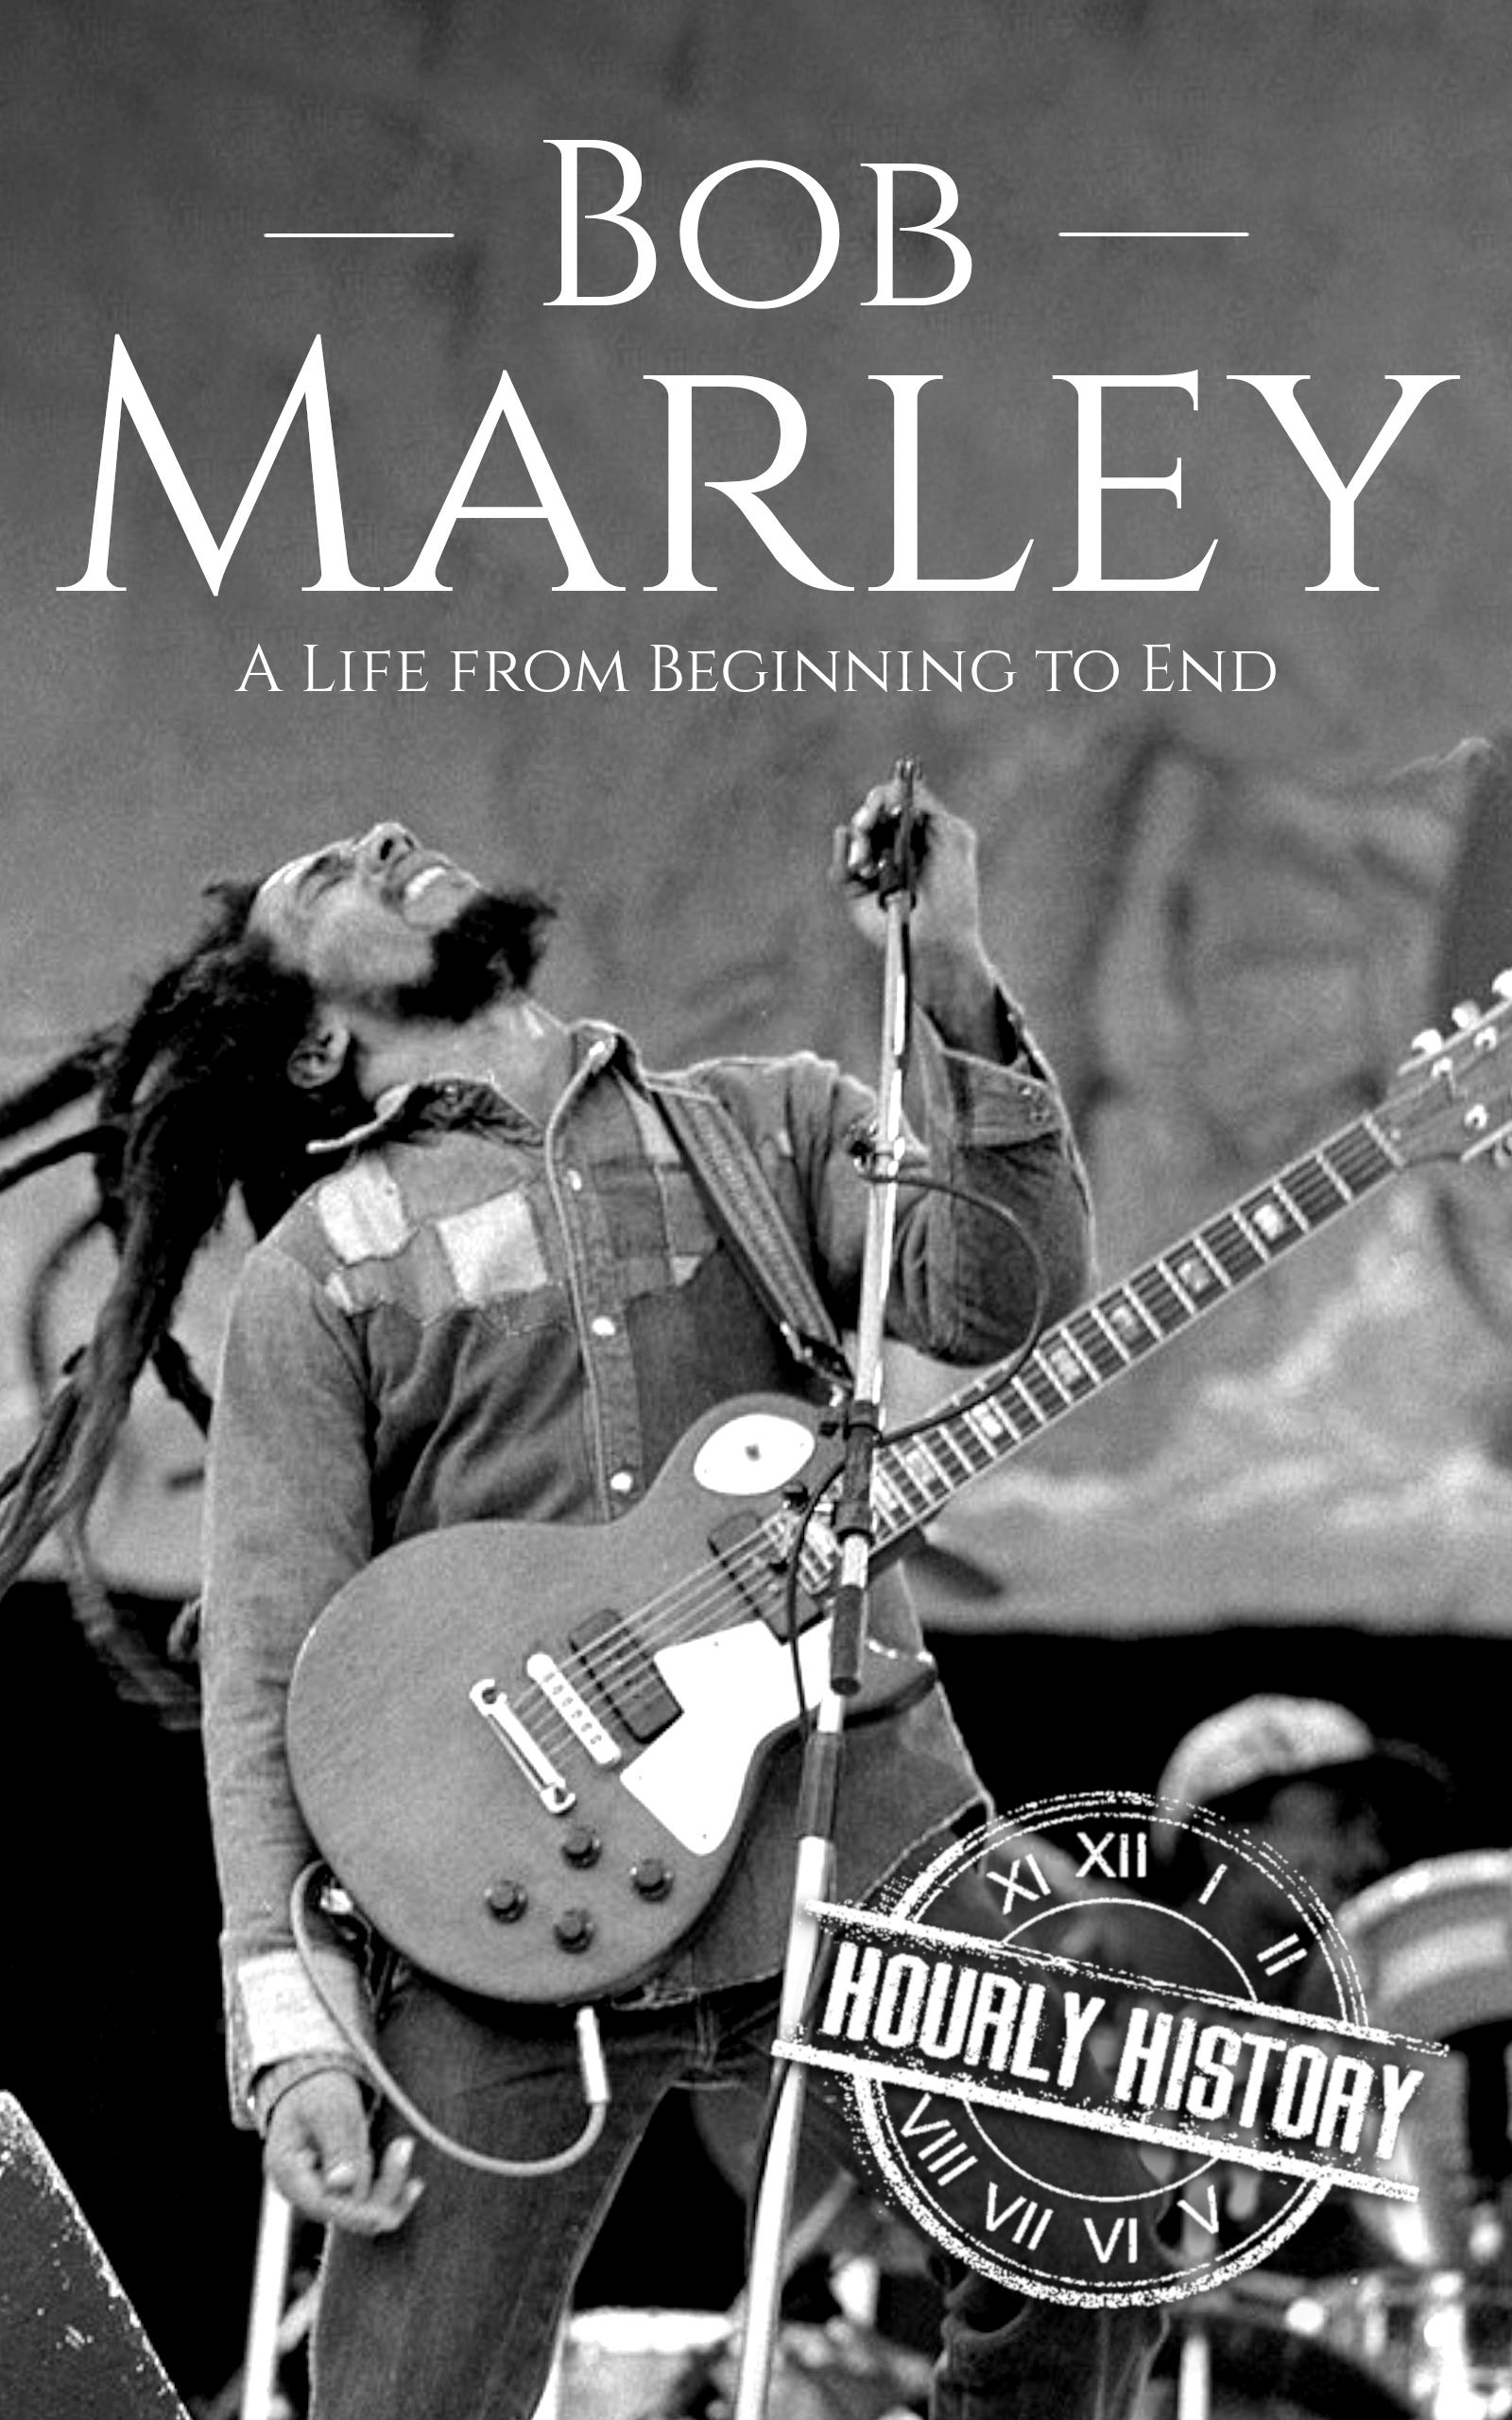 Bob Marley: A Life from Beginning to End